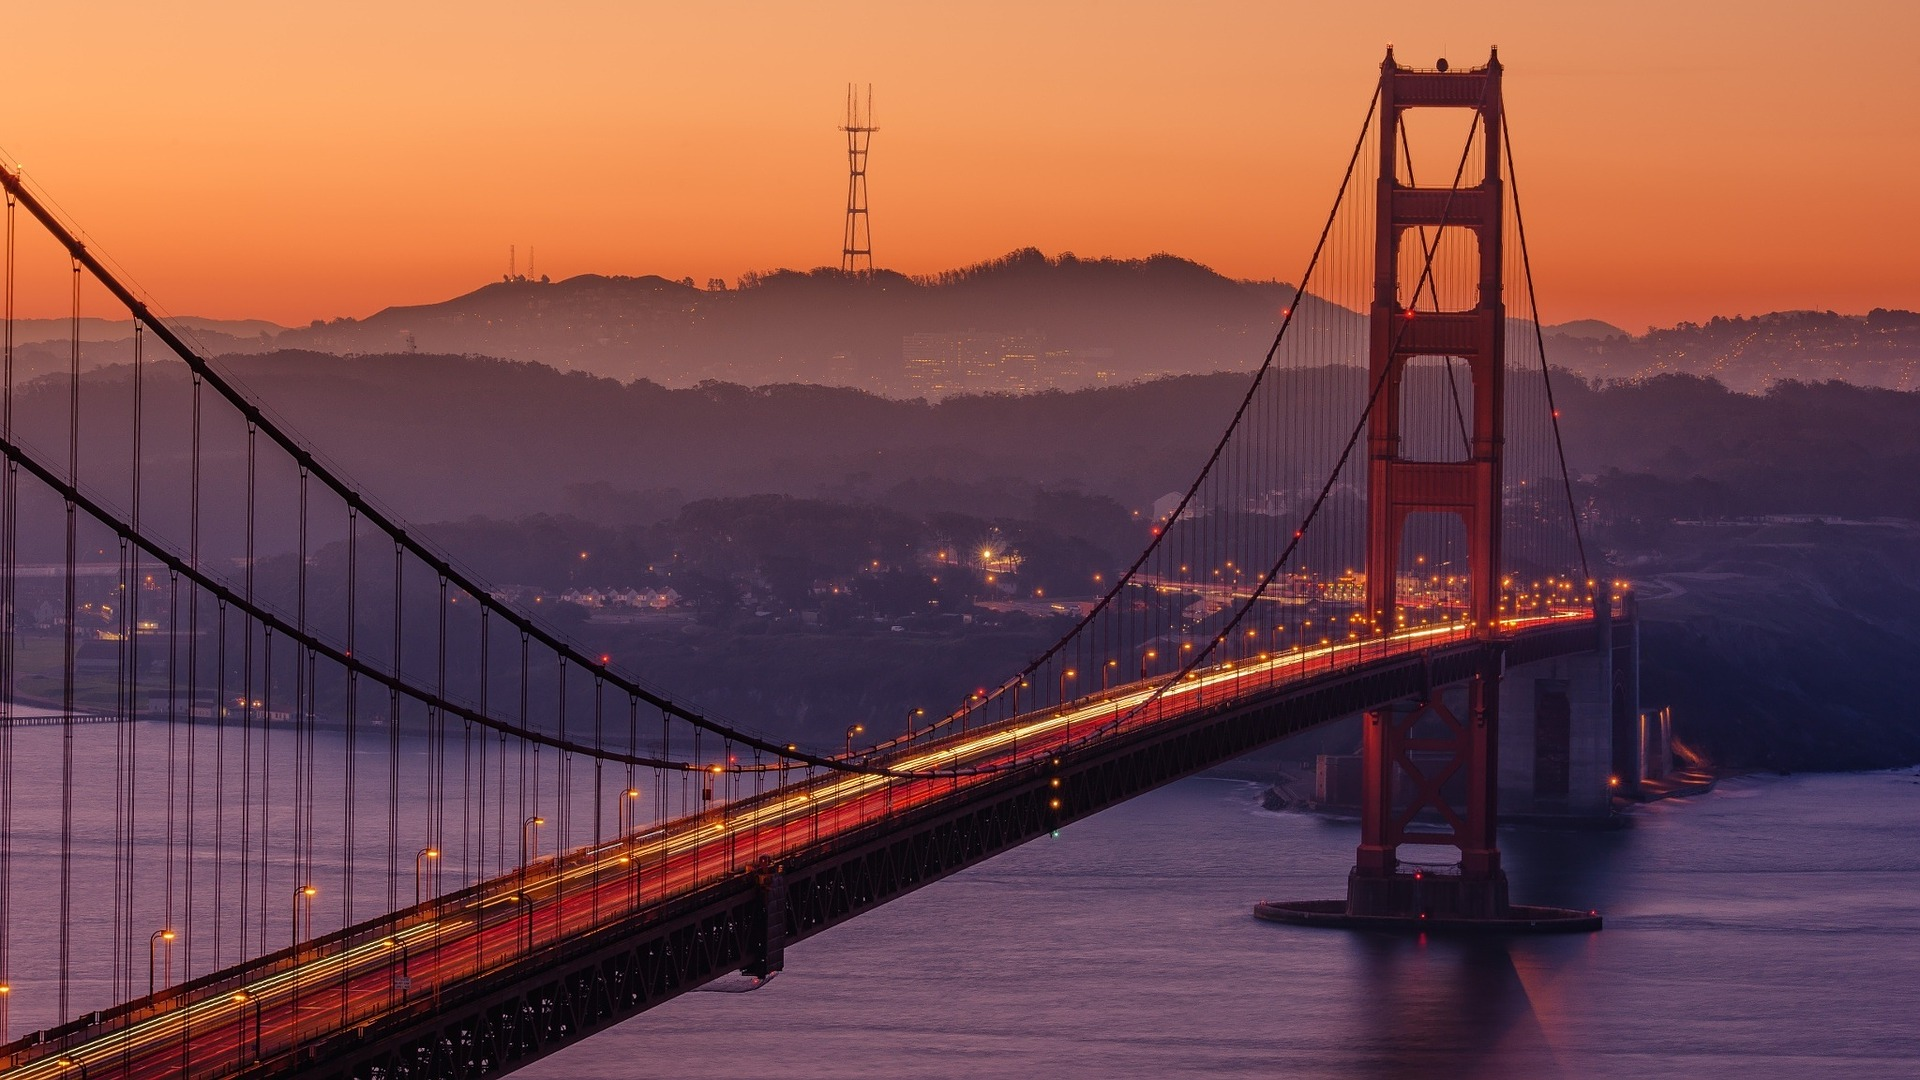 the San Francisco Golden Gate Bridge at sunset